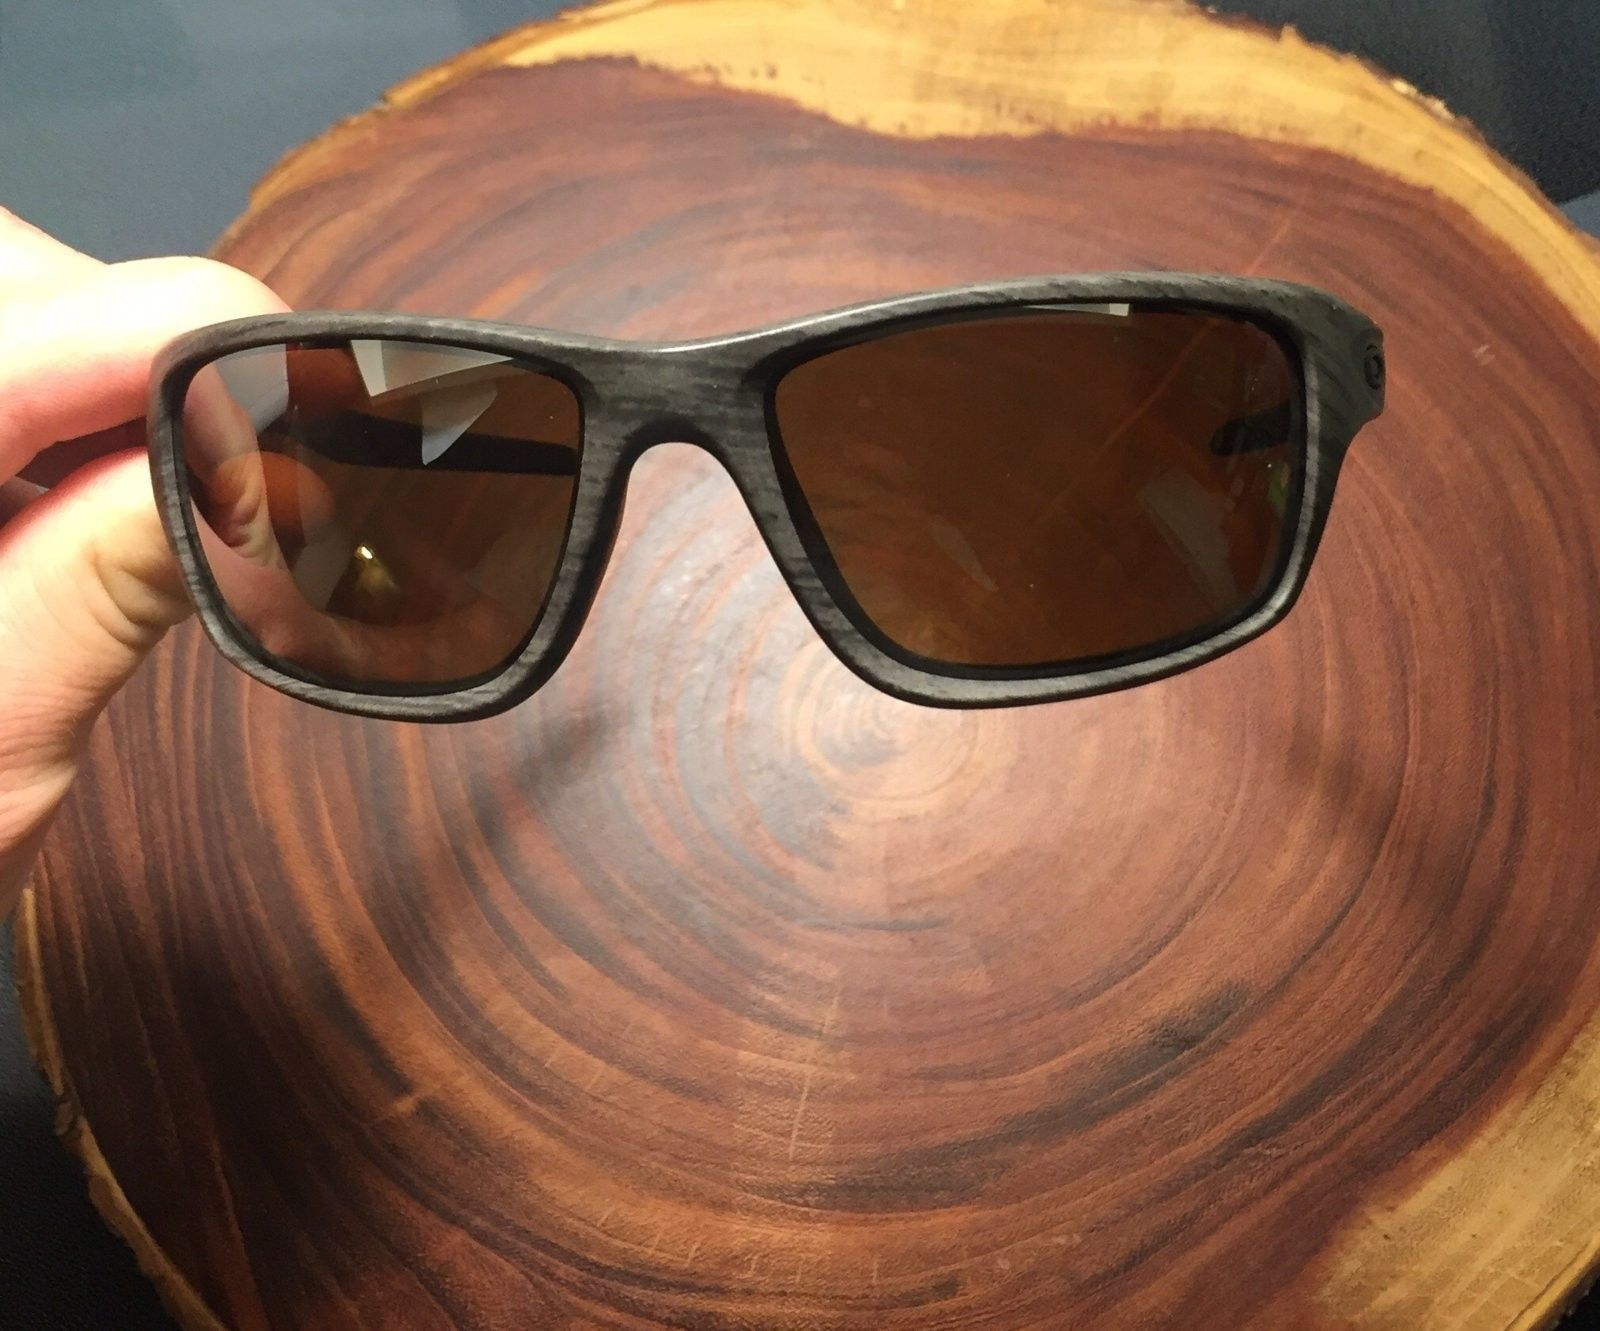 Opinions on grey Woodgrain vs. Matte Tortoise for casual everyday wear - image.jpg